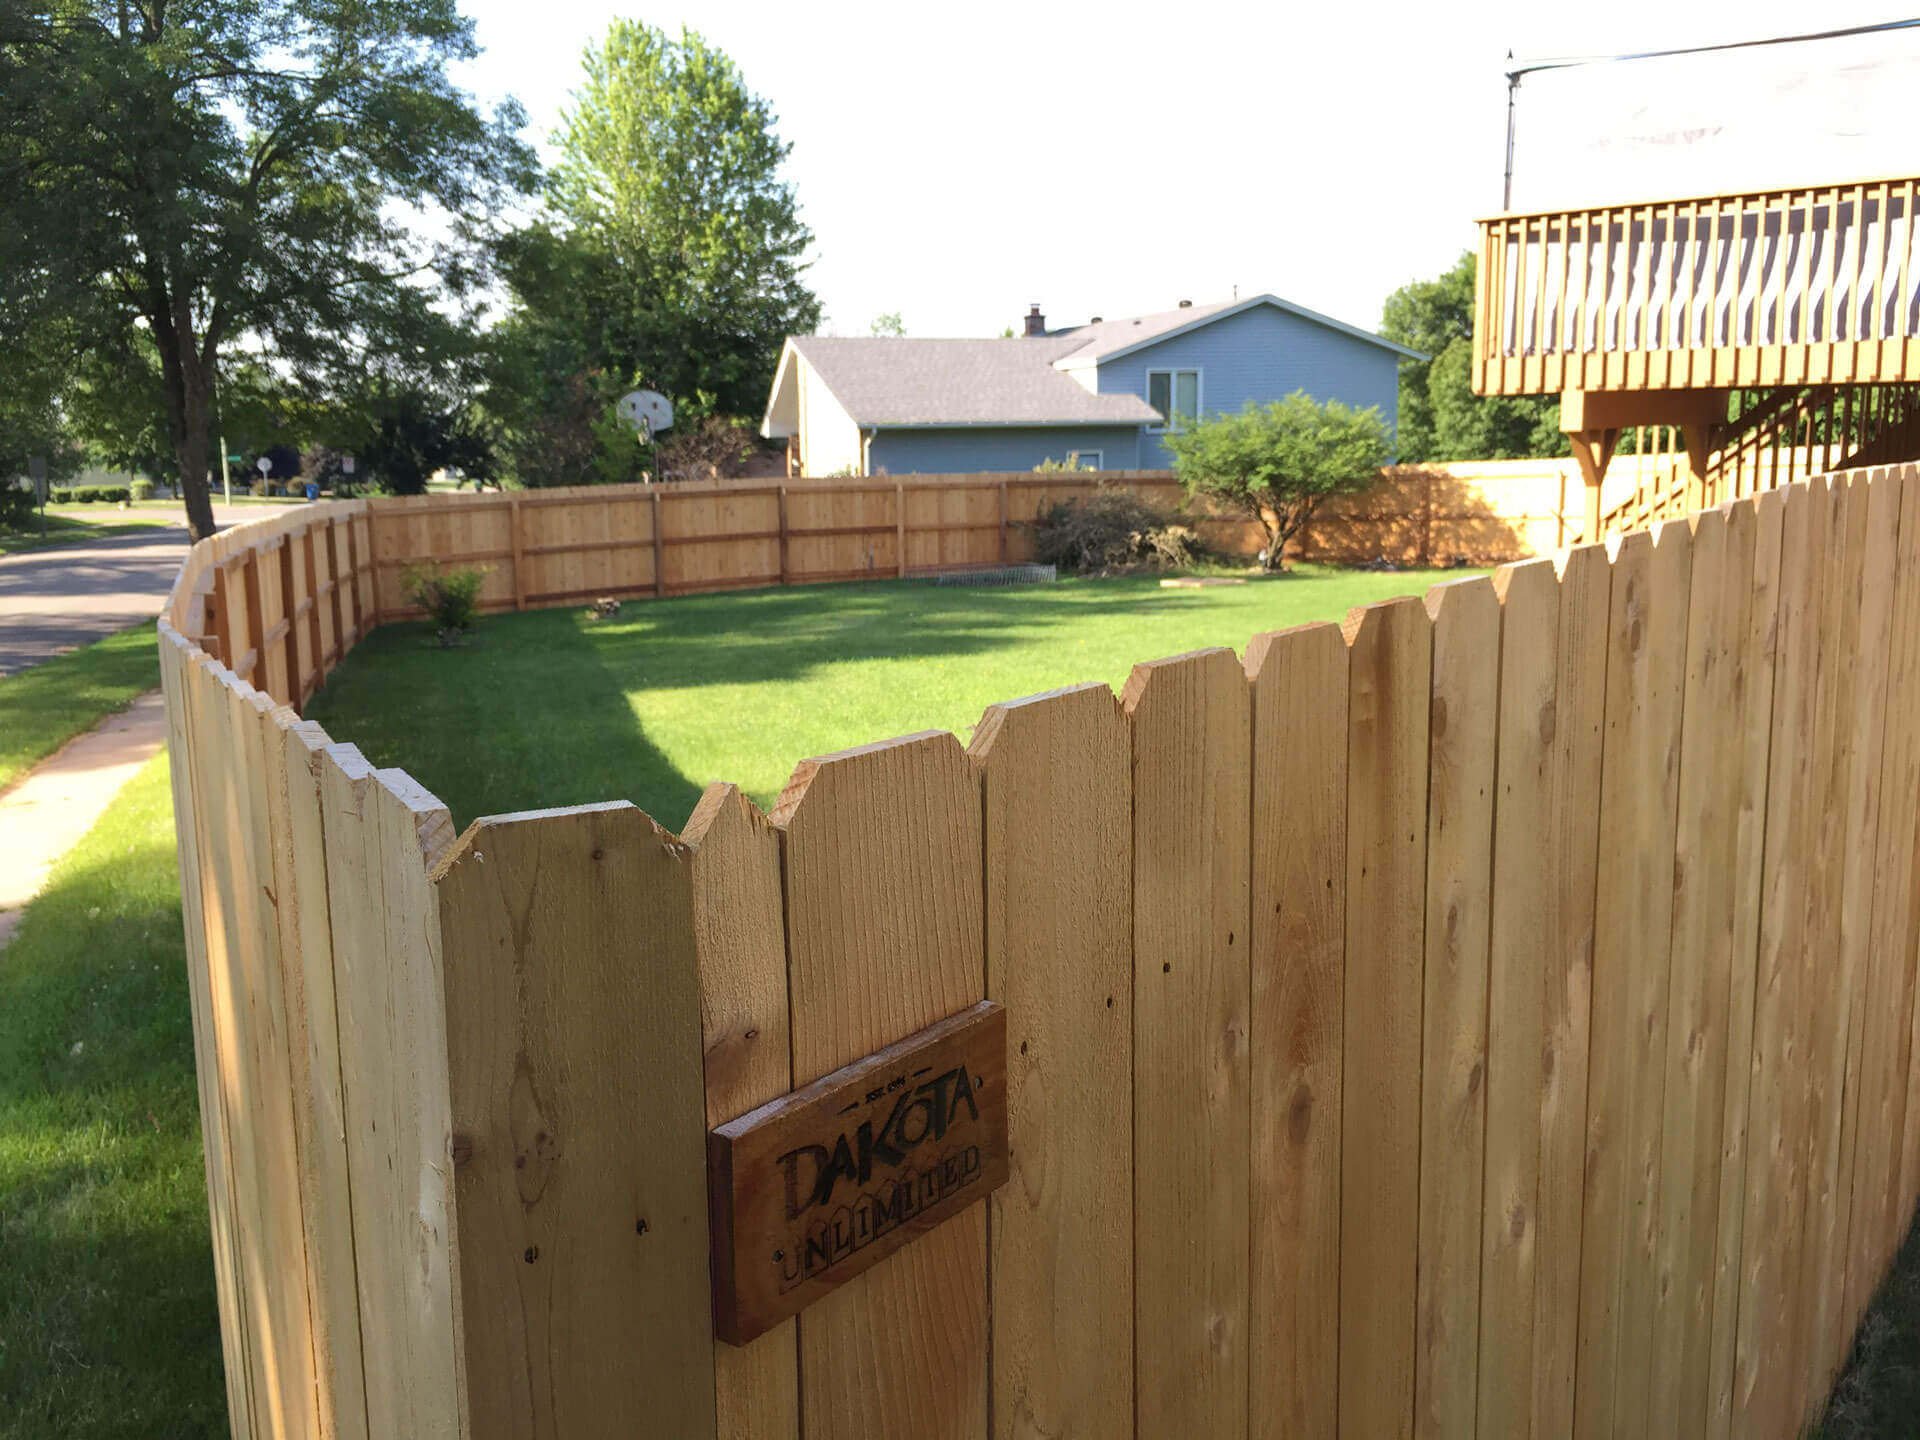 wood privacy fences. Anemptytextlline Wood Privacy Fences